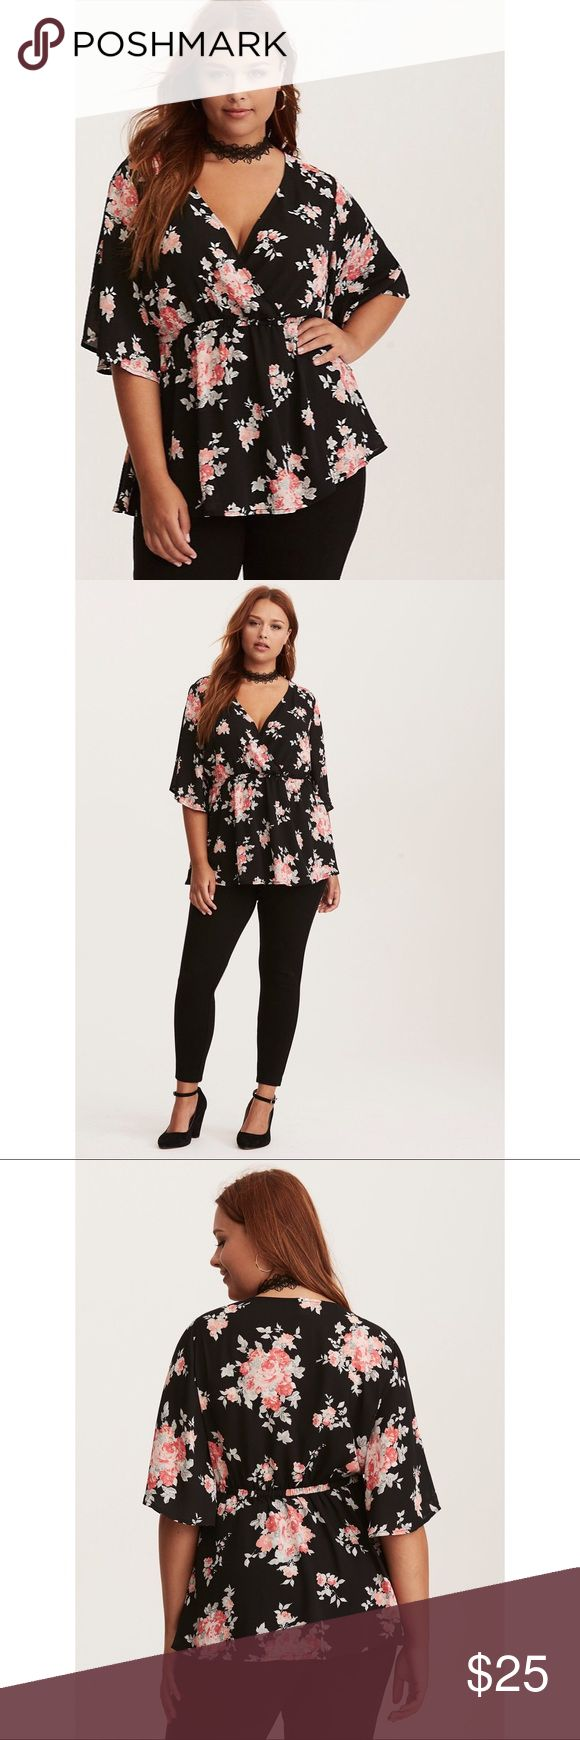 "NWT Torrid Floral Surplice Babydoll Top Whoever said ""don't flatter yourself"" obviously didn't have a top like this. Designed with flow in mind, the semi-sheer black georgette is detailed with a femme grey and pink floral print. The flattery gets you everywhere - from the bust-accentuating surplice neckline, to the tummy-concealing stretch babydoll waist, to the flutter sleeves. Torrid size 0  Model is 5'10"", size 1 Size 1 measures 29 1/4"" from Shoulder torrid Tops Blouses"